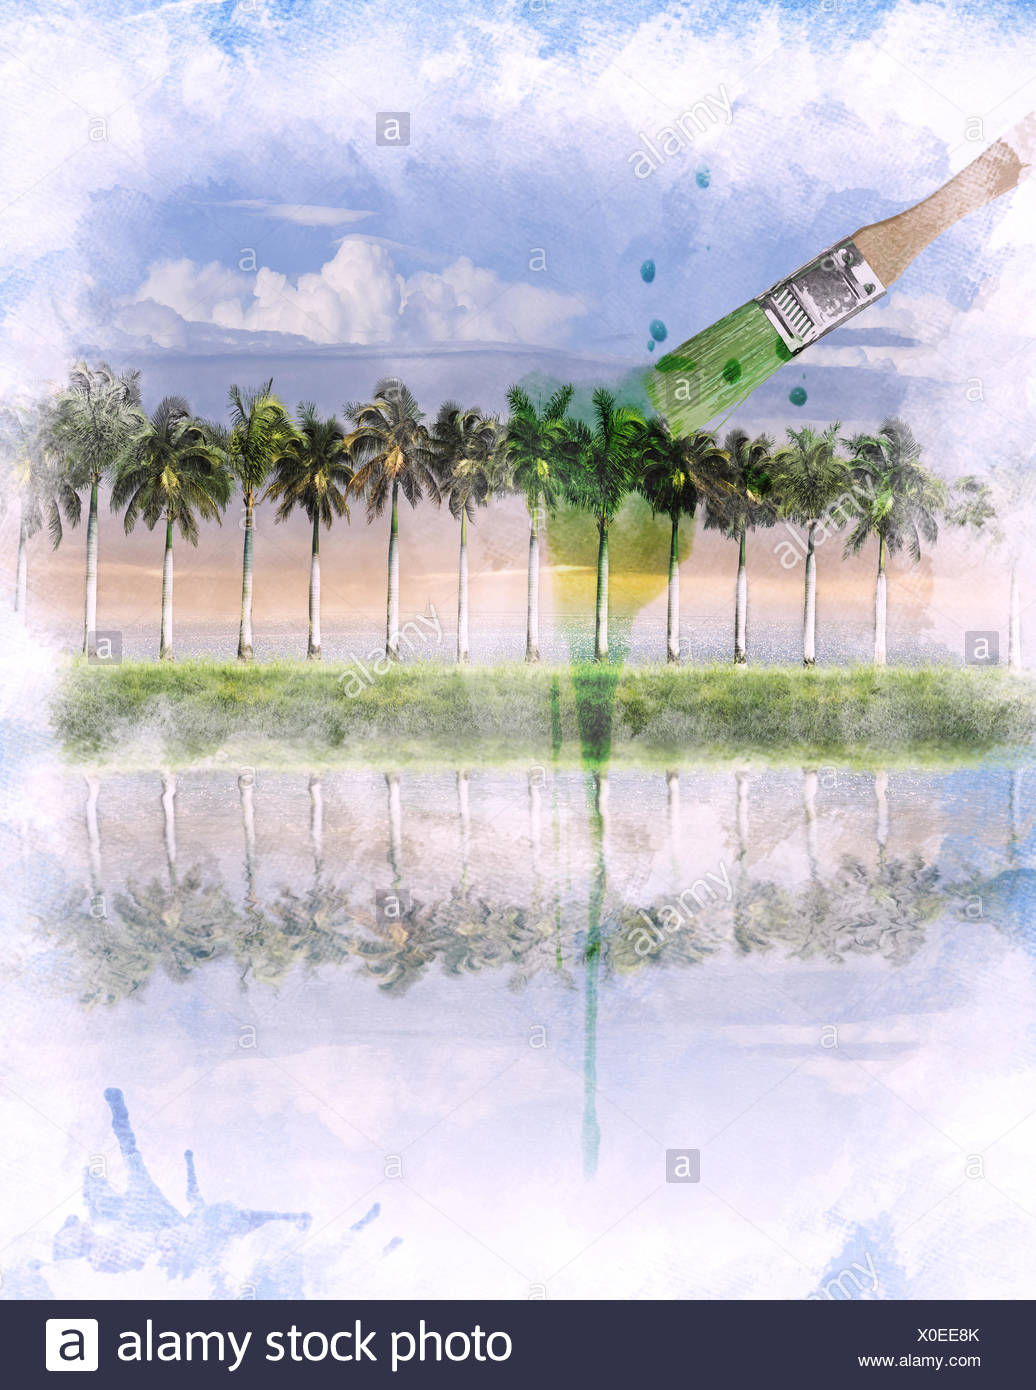 Watercolor Image Of  Landscape - Stock Image